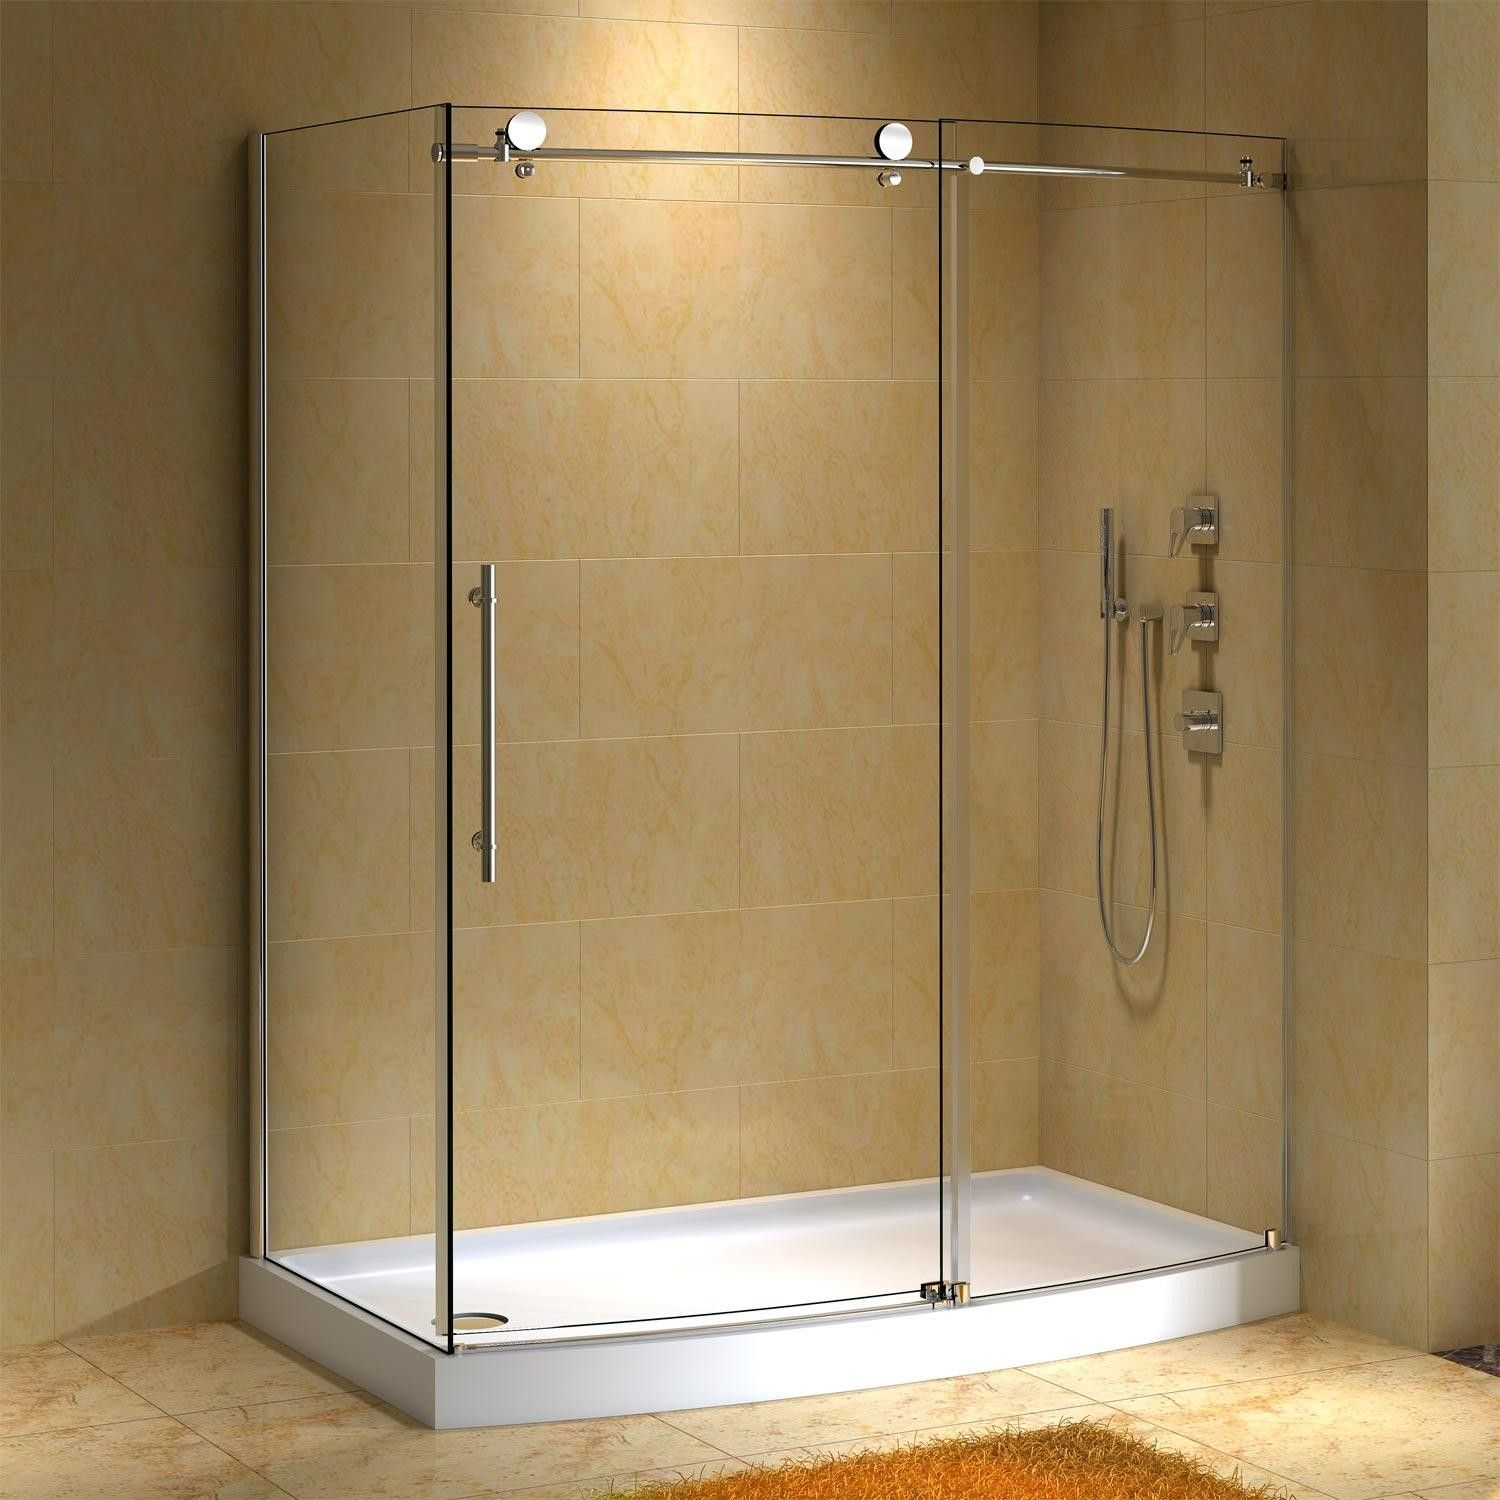 58 X 30 Sloan Corner Shower Enclosure With Arched Front With